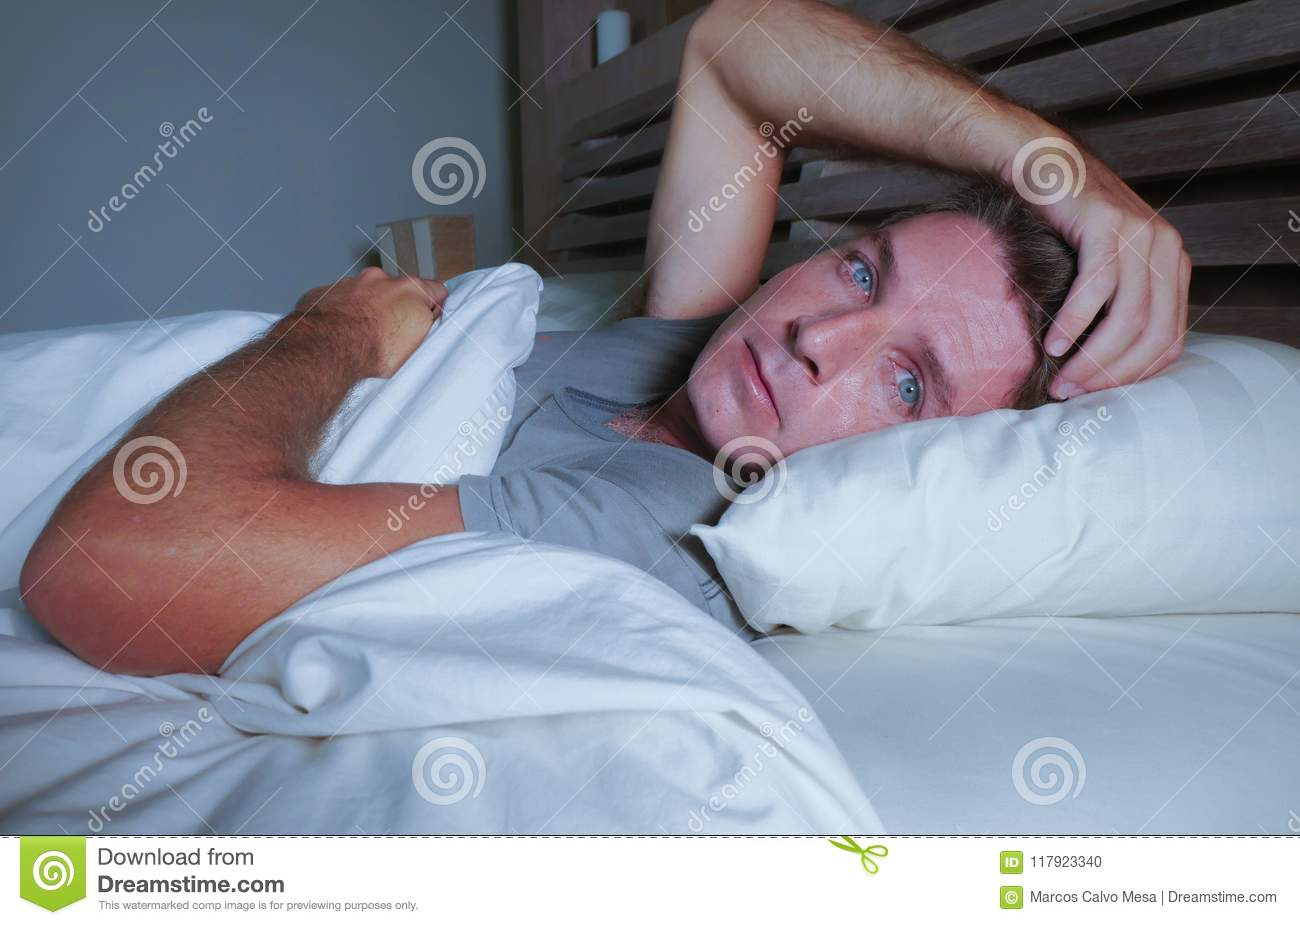 Restless worried young attractive man awake at night lying on bed sleepless with eyes wide opened suffering insomnia sleeping diso